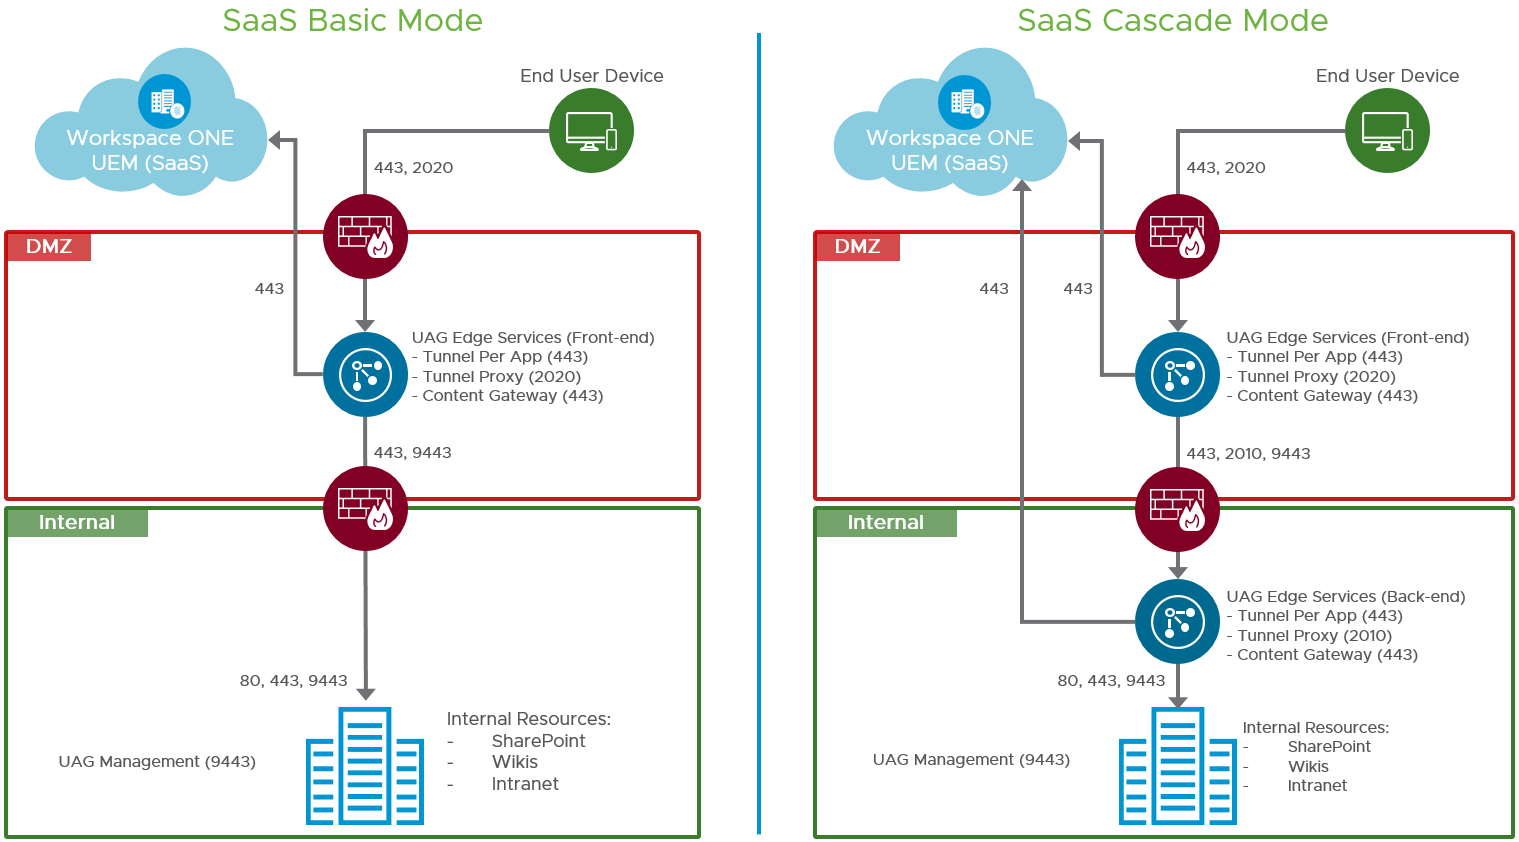 VMware Tunnel and Content Deployment Modes